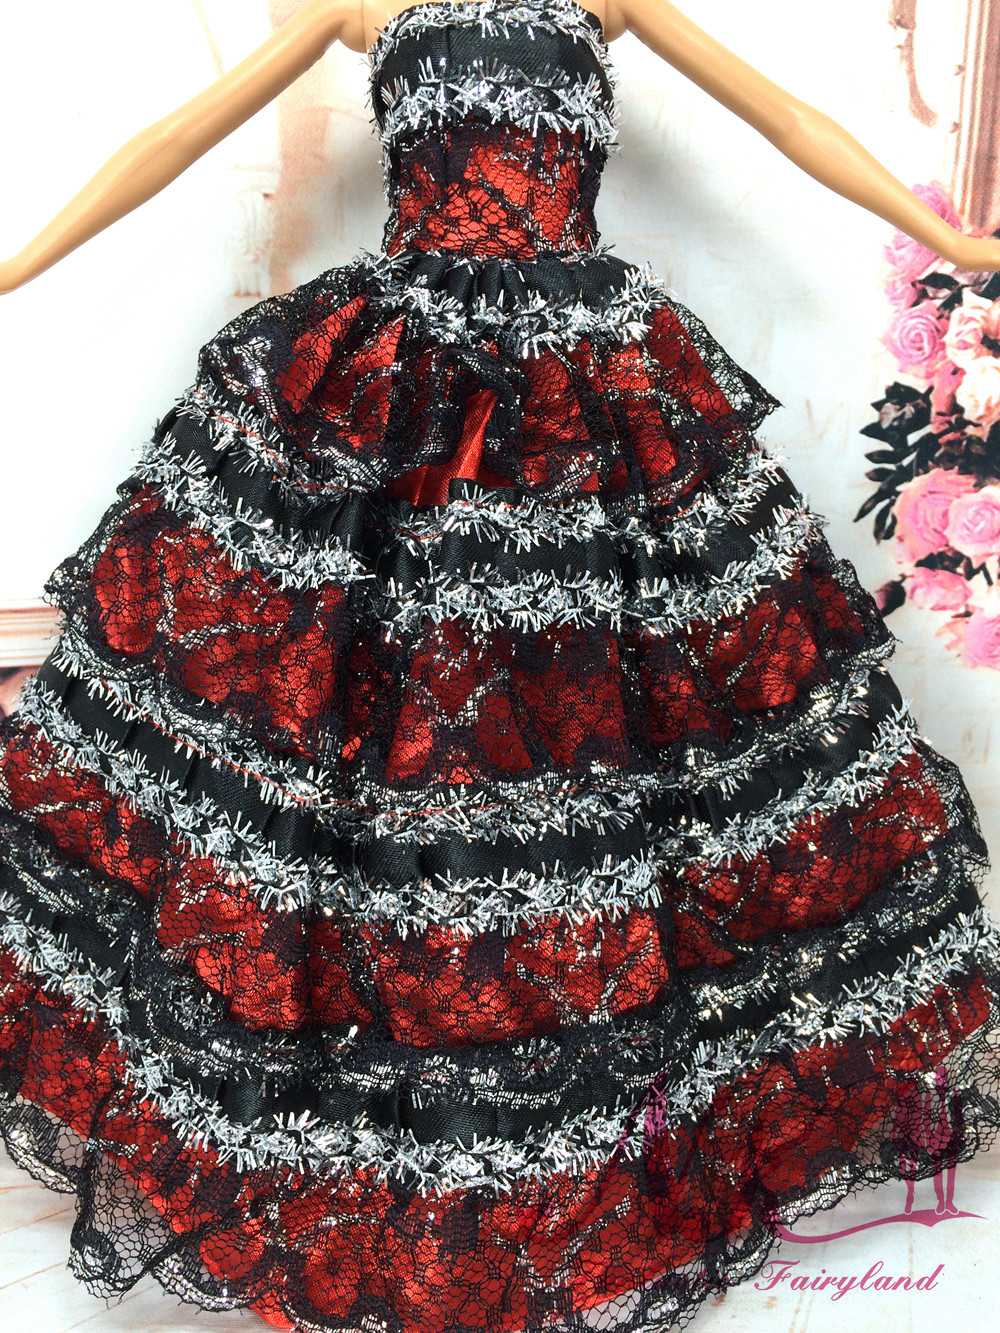 NK One Pcs Handmade Princess Wedding ceremony Gown Noble Occasion Robe For Barbie Doll Trend Design Outfit Finest Reward For Lady' Doll 037A